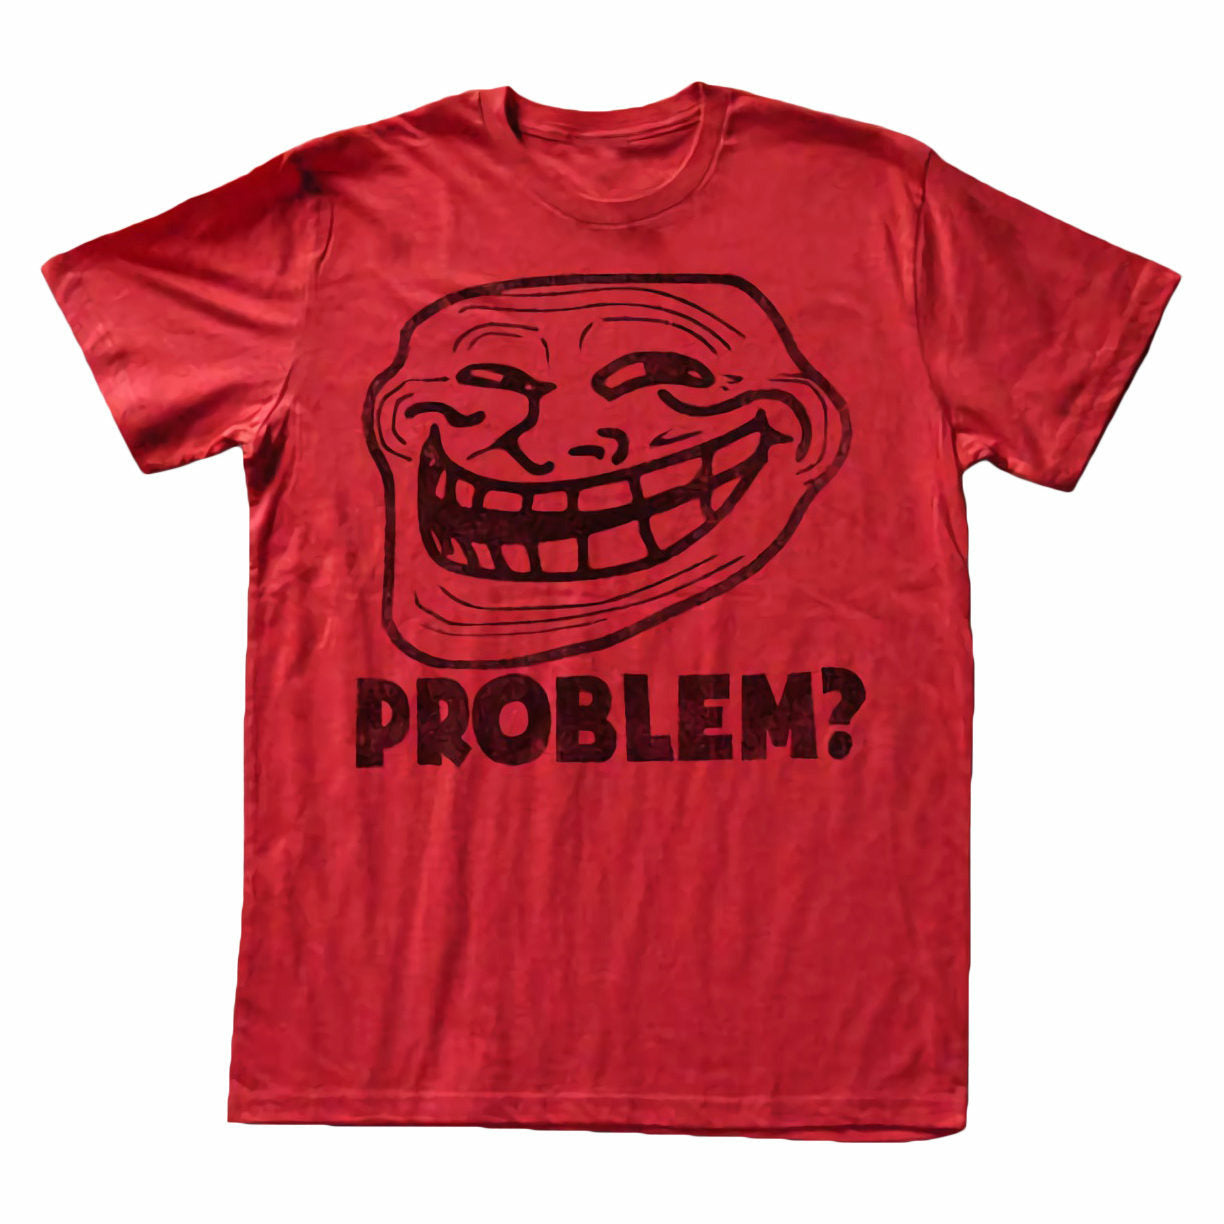 Troll Face You Mad Problem? Mens Lightweight Red T-Shirt